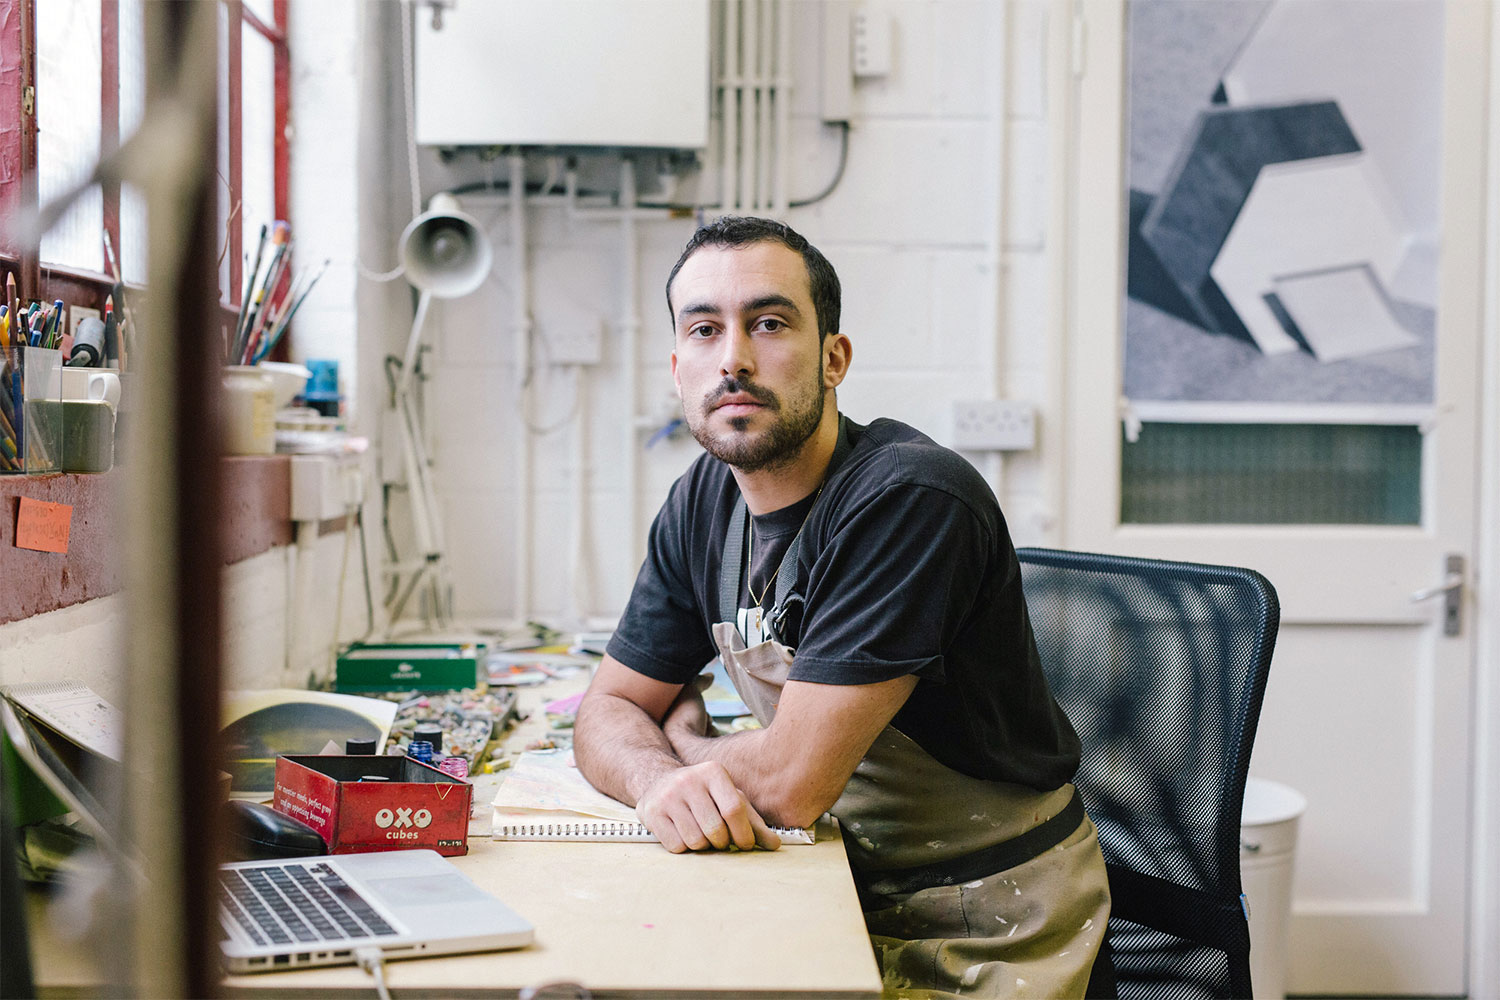 Joe Cruz in his studio, by Lauren Maccabee